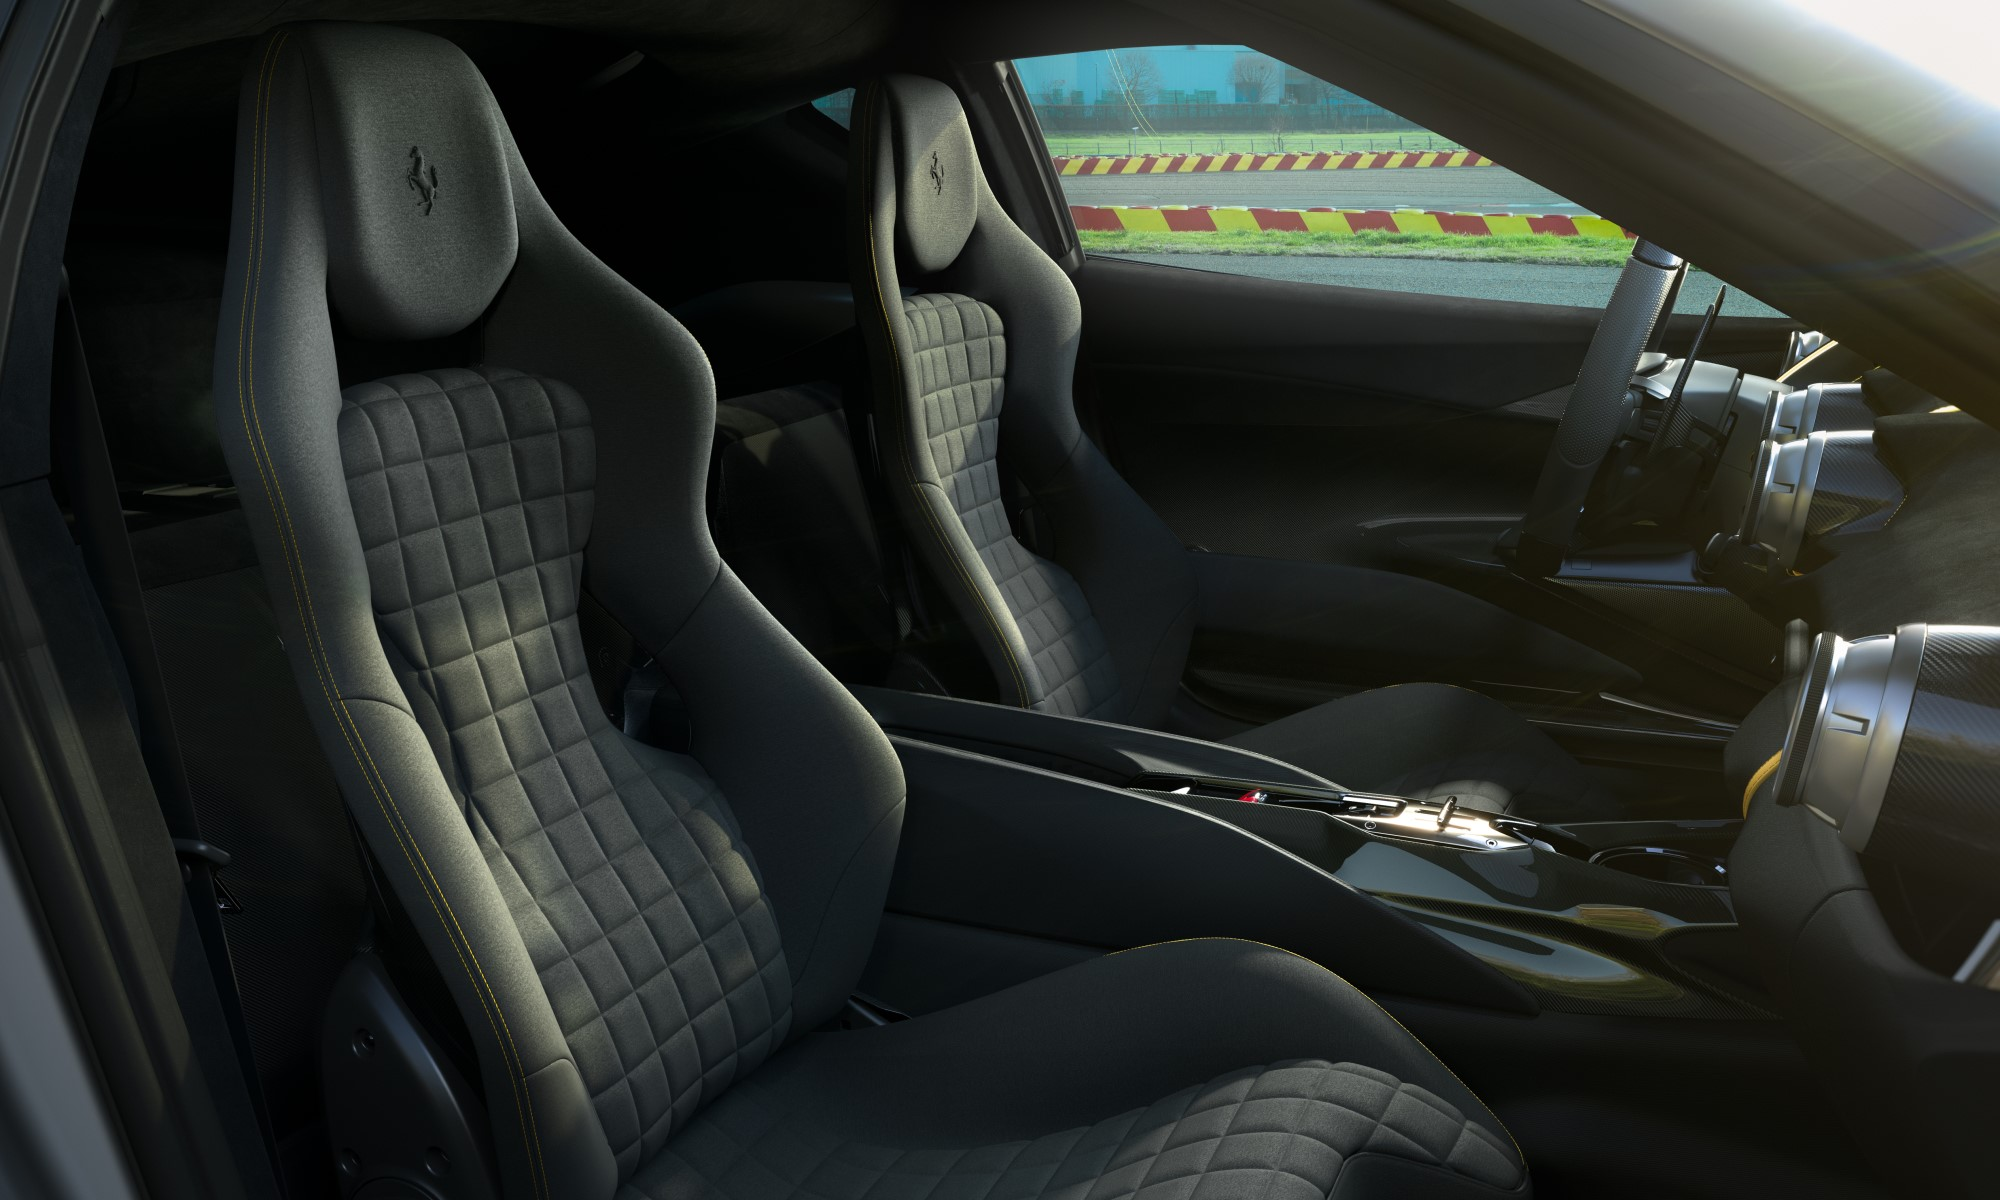 Limited edition Ferrari V12 interior